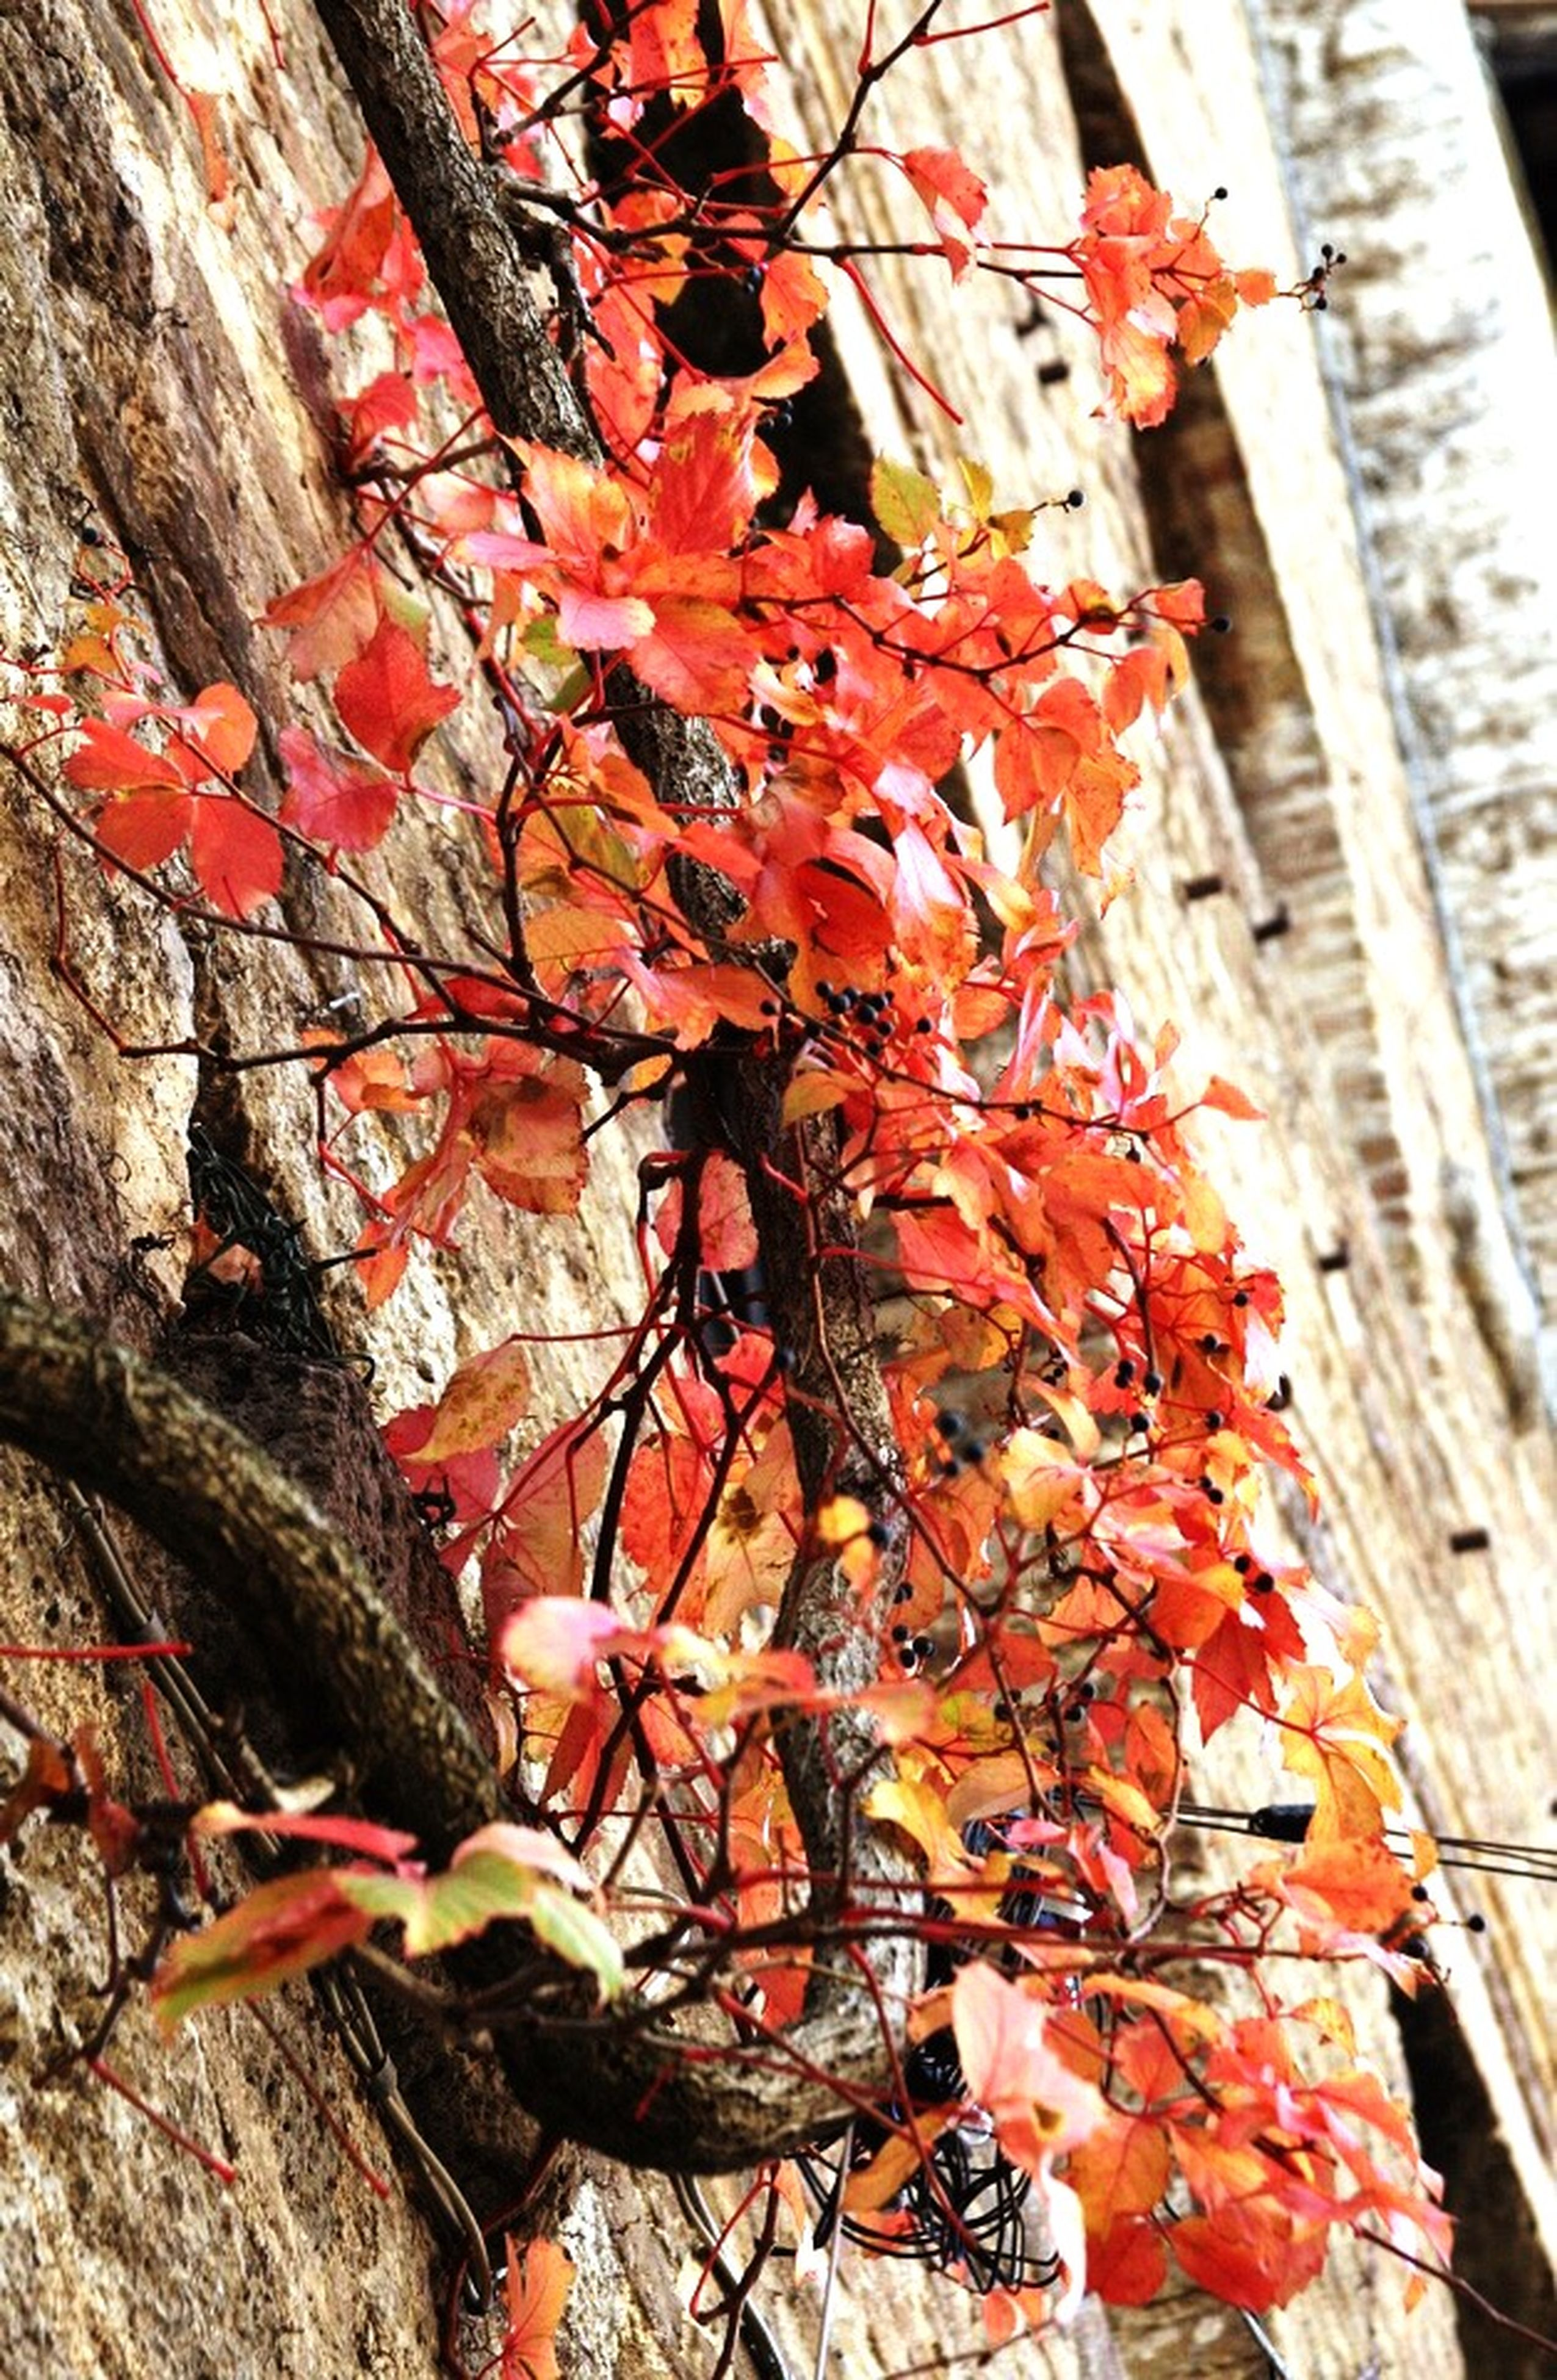 autumn, red, built structure, building exterior, leaf, architecture, change, tree, orange color, branch, season, growth, day, low angle view, close-up, outdoors, nature, house, wall - building feature, plant